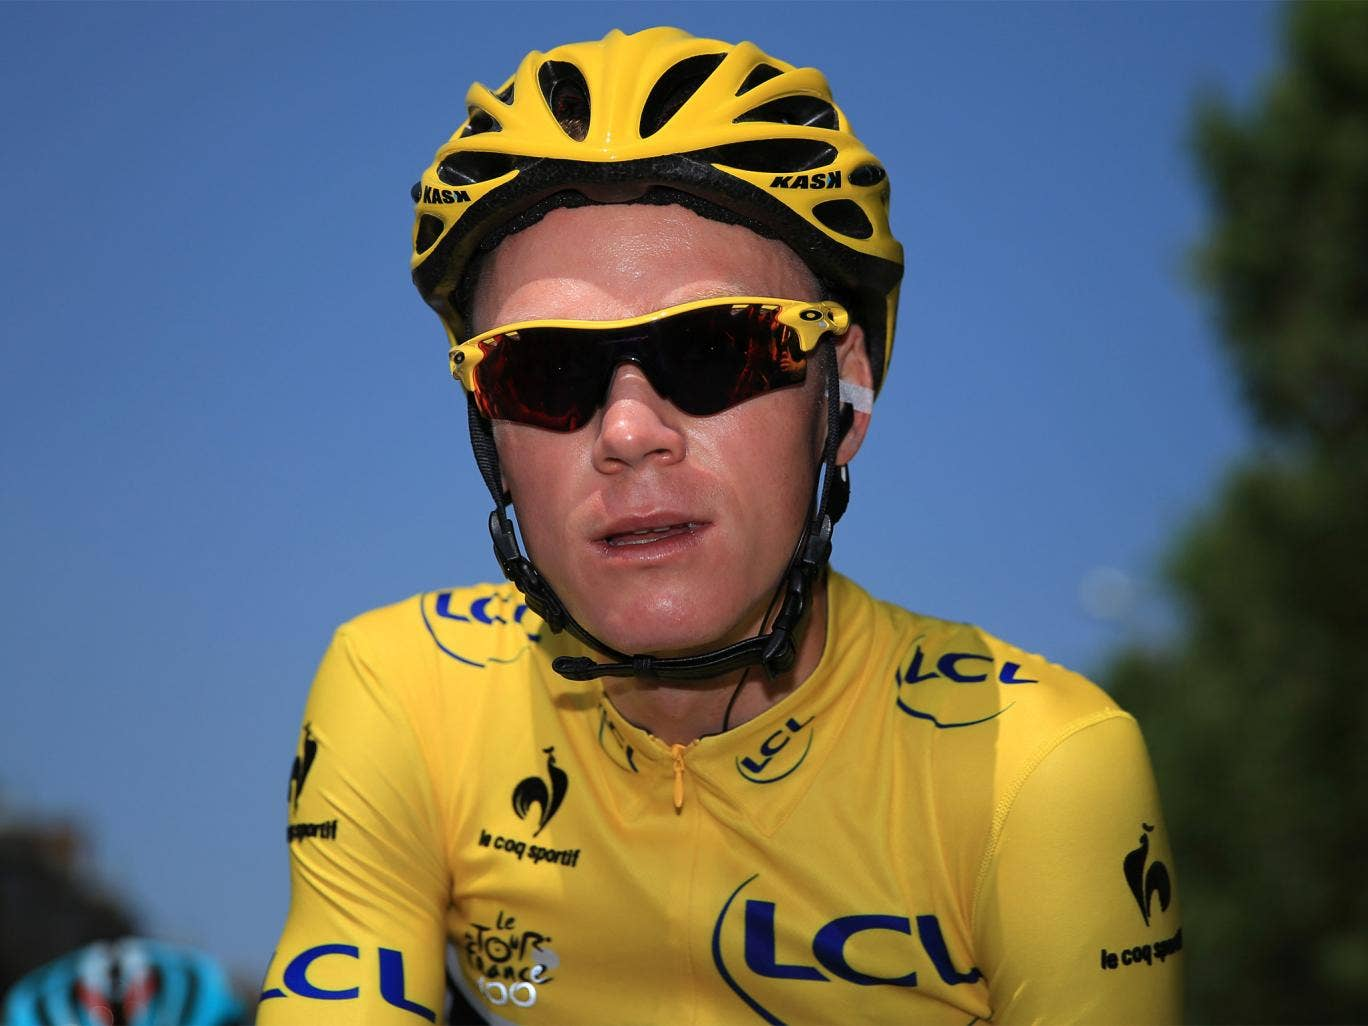 Chris Froome, Team Sky's leader, says he has recovered from a fall last month